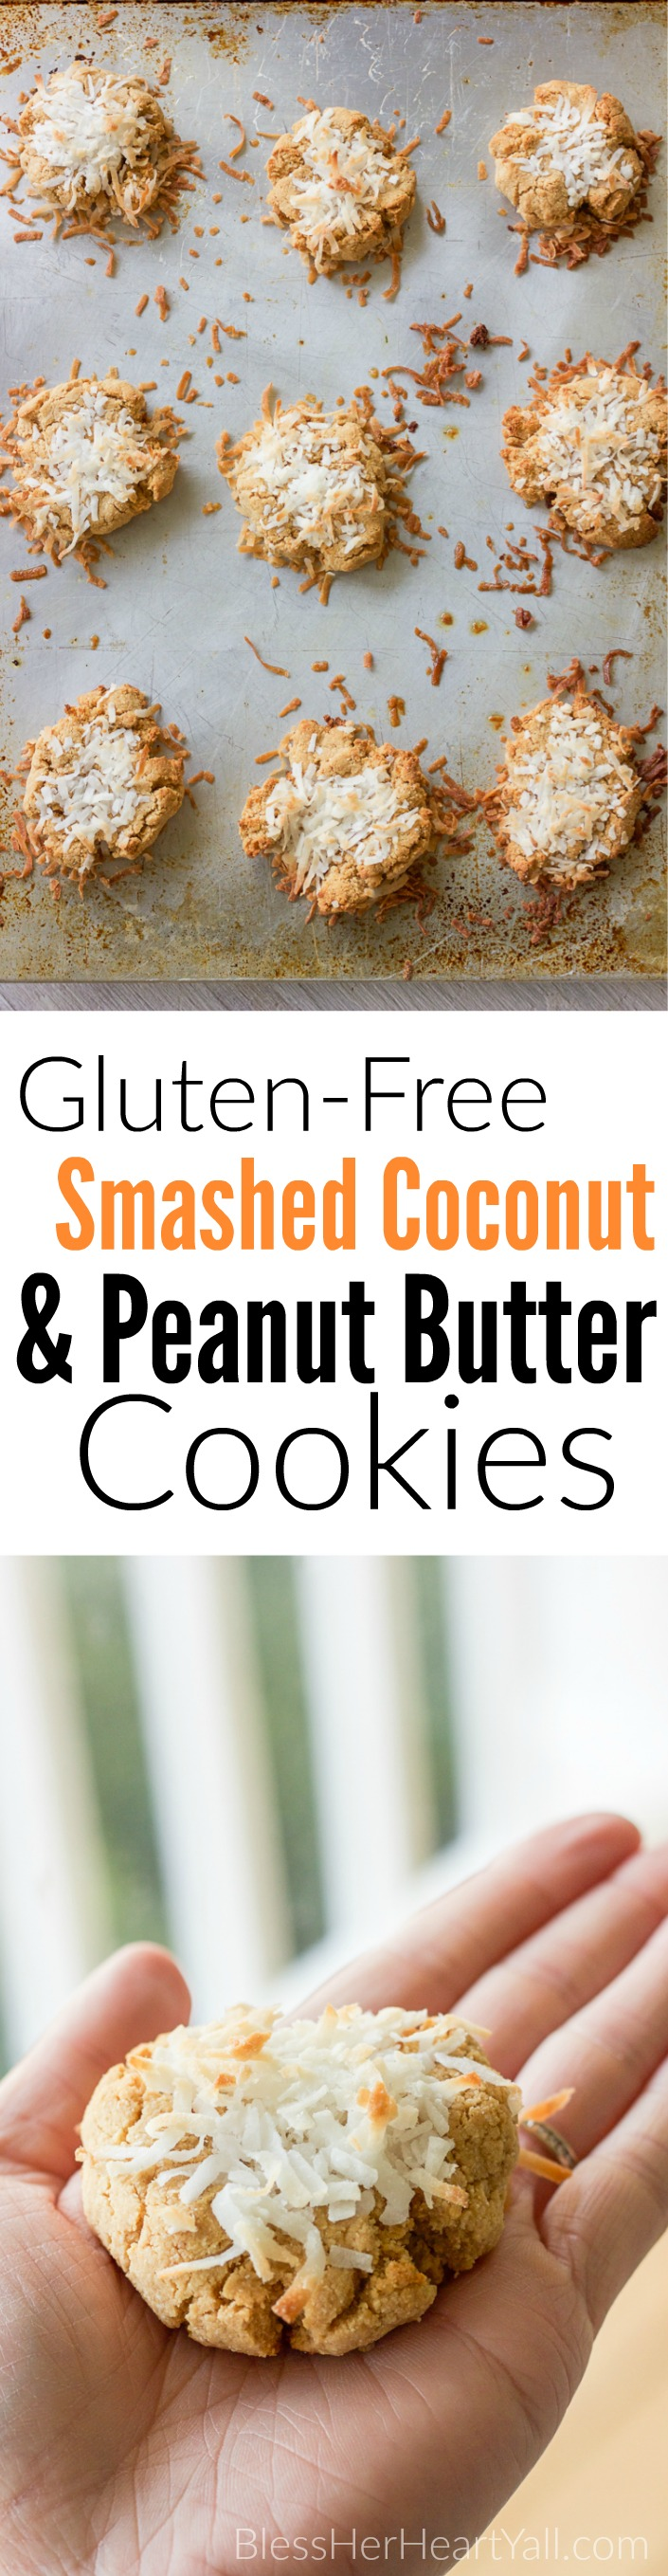 These quick gluten-free smashed coconut peanut butter cookies combine coconut flour, peanut butter, and fresh coconut flakes together for fluffy and sweet cookies in just minutes!